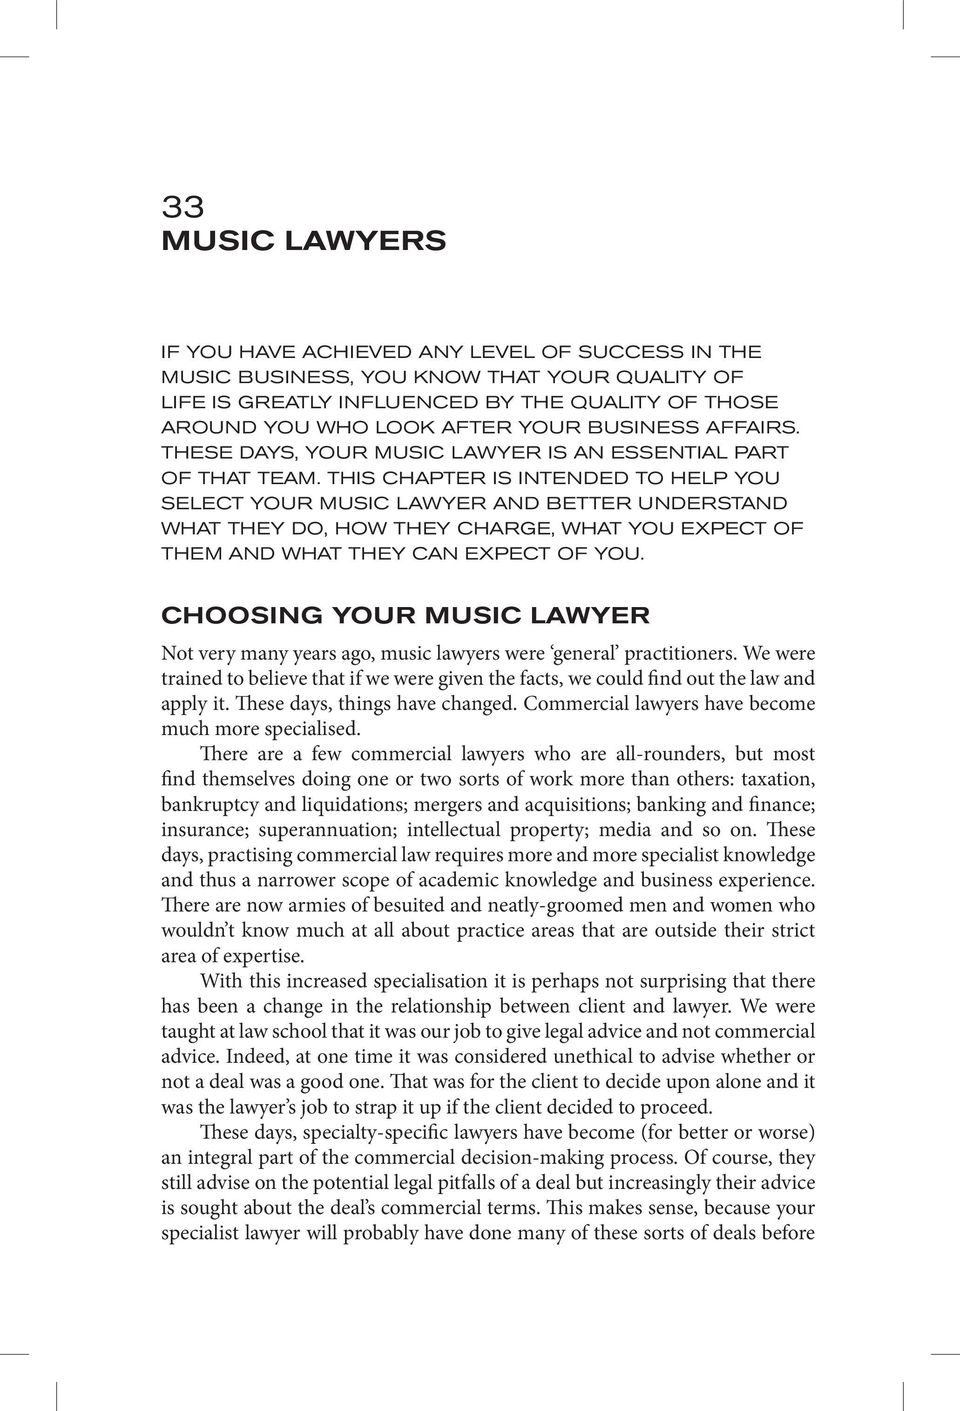 THIS CHAPTER IS INTENDED TO HELP YOU SELECT YOUR MUSIC LAWYER AND BETTER UNDERSTAND WHAT THEY DO, HOW THEY CHARGE, WHAT YOU EXPECT OF THEM AND WHAT THEY CAN EXPECT OF YOU.